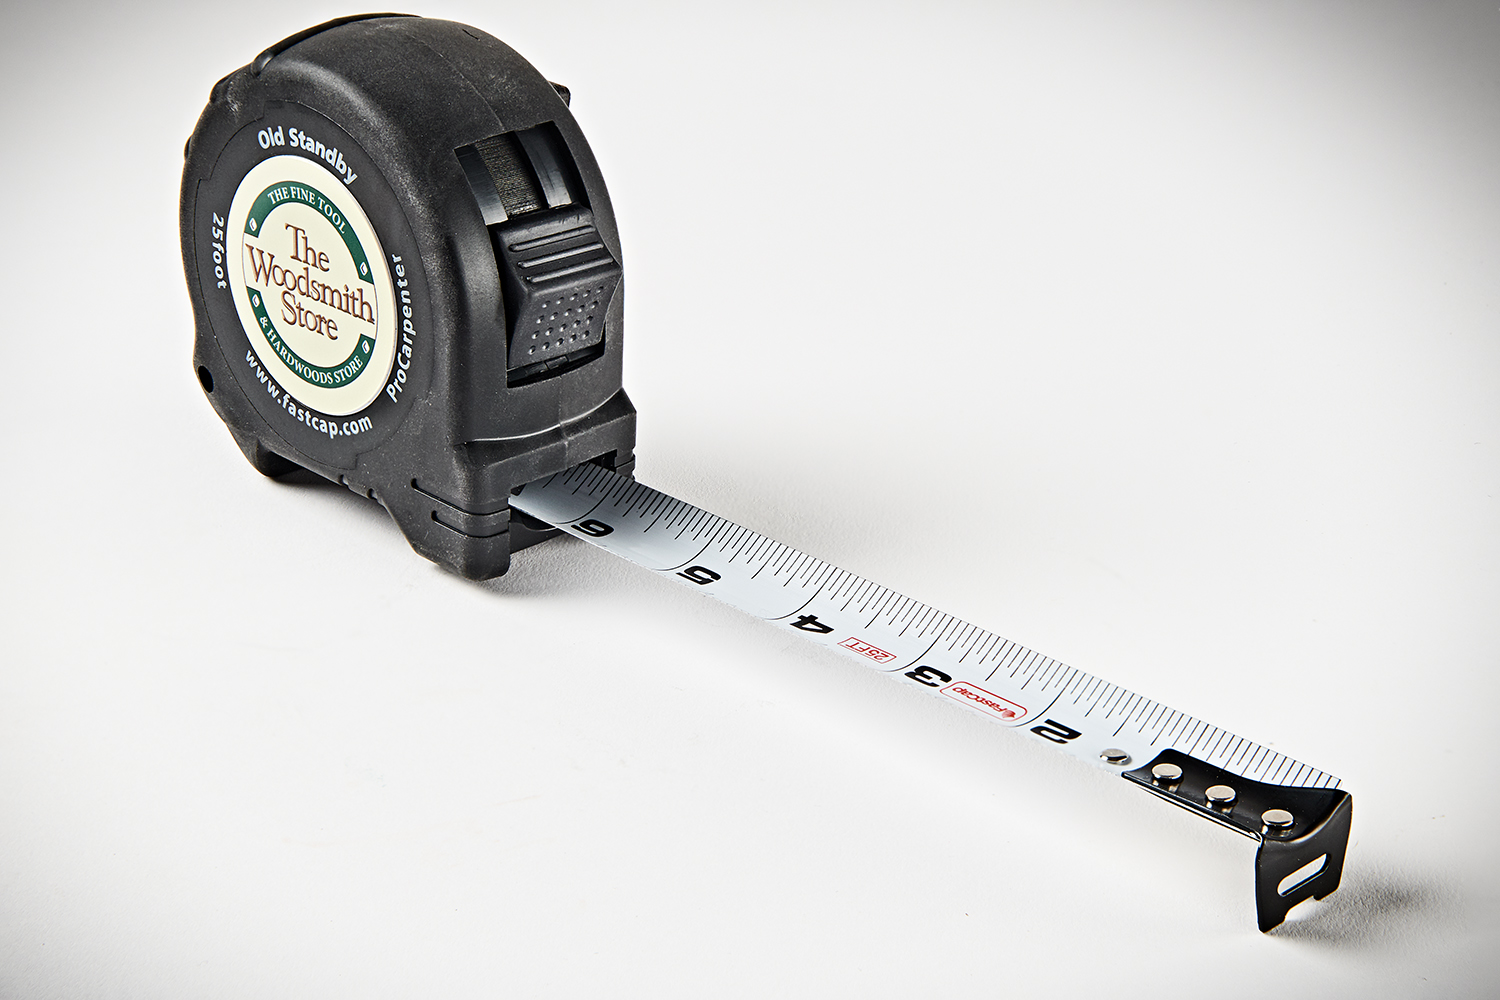 """The Woodsmith Store Logo Fastcap 25"""" Old Standby Tape Measure WSS-PS25"""